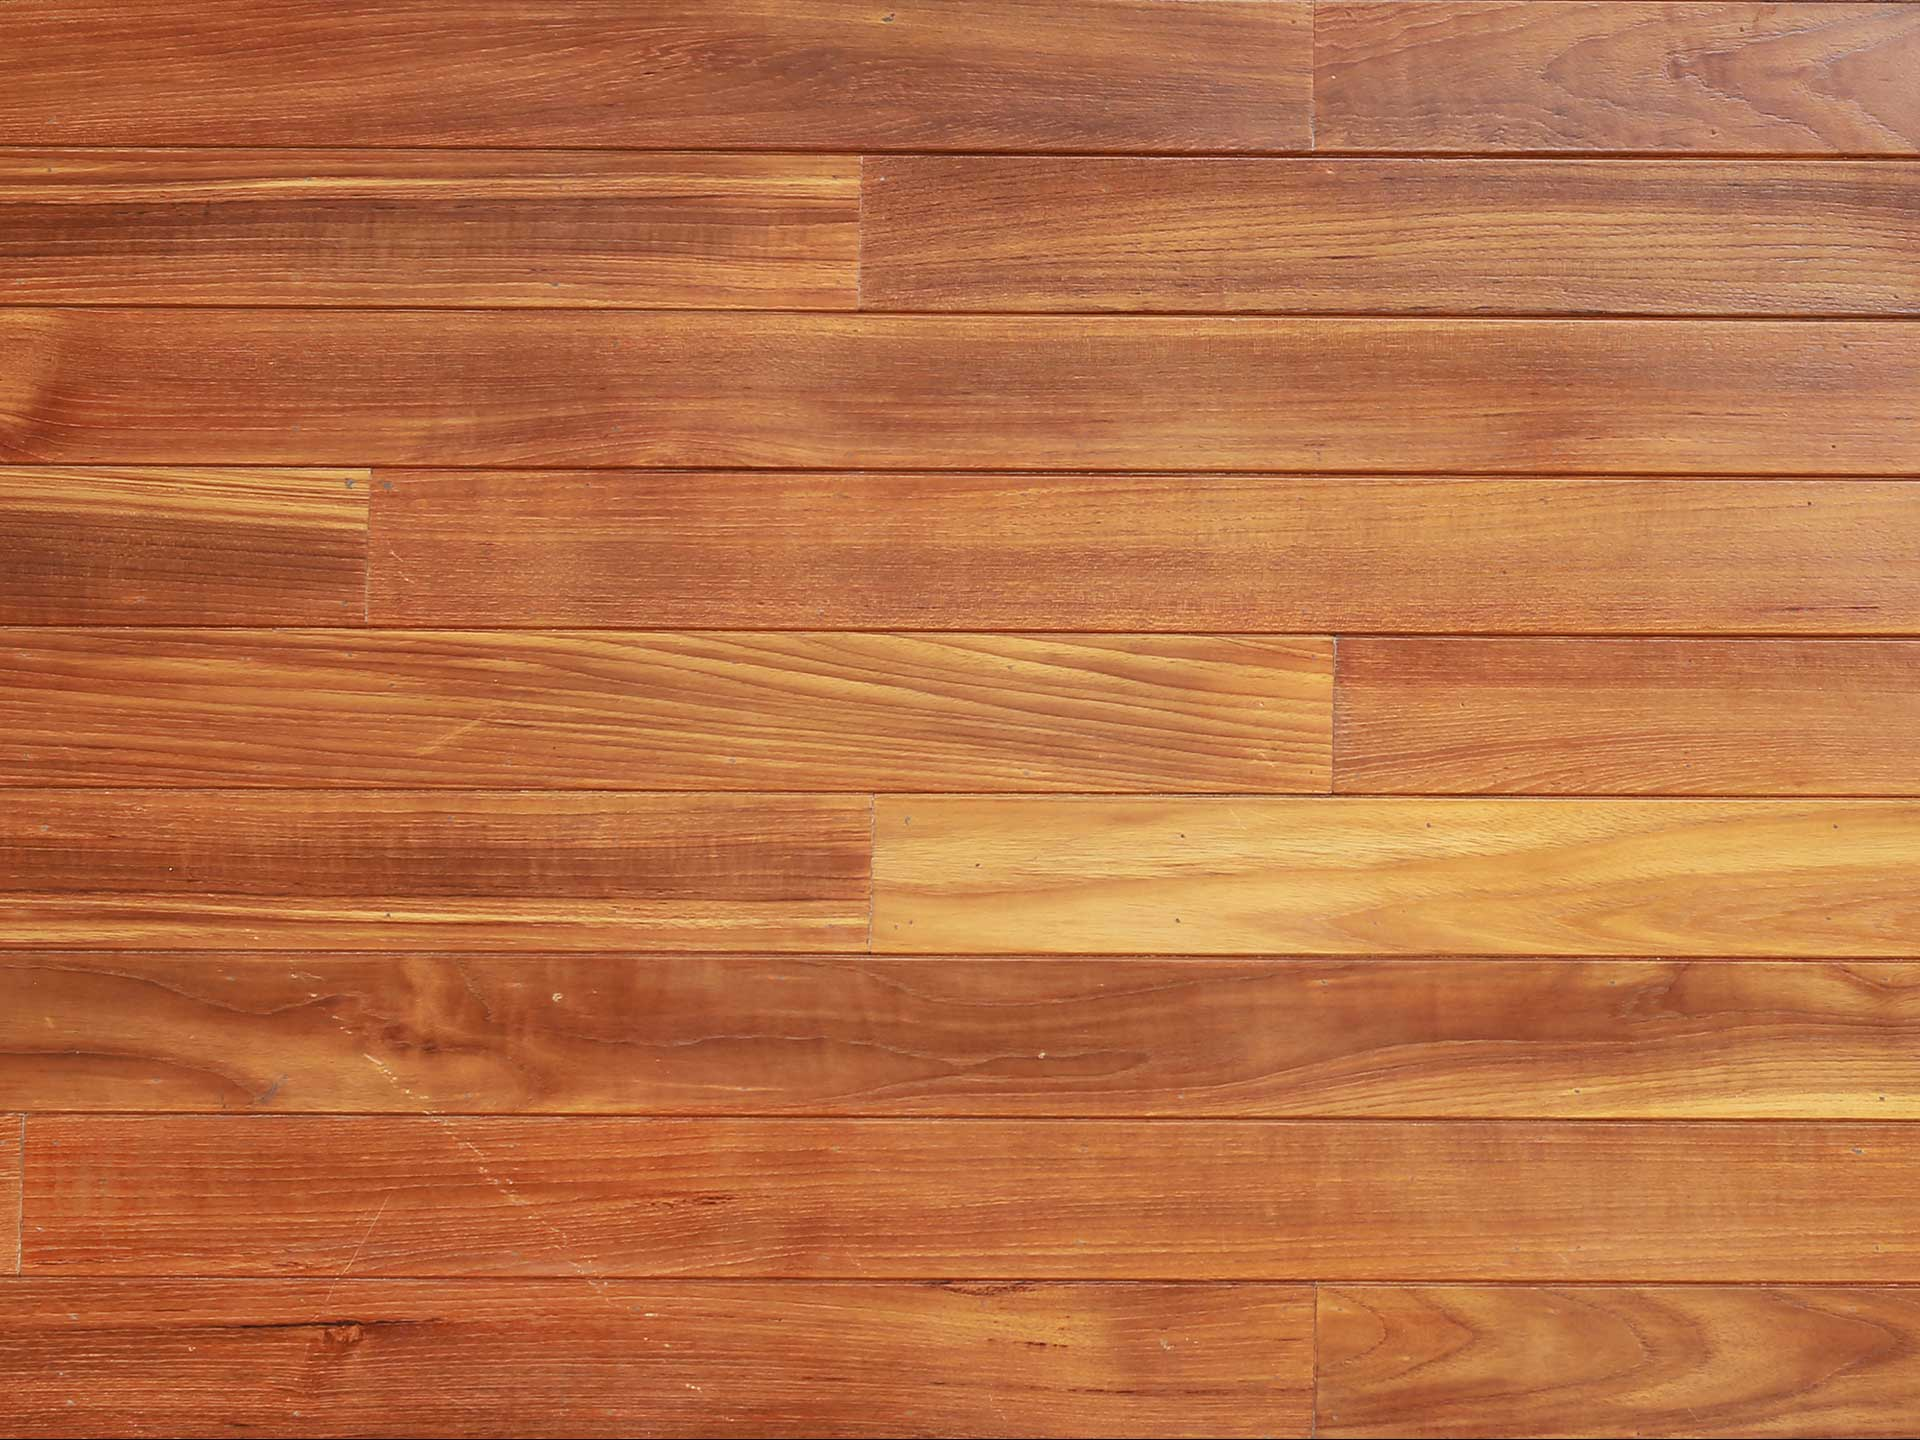 How to take care of your Hardwood